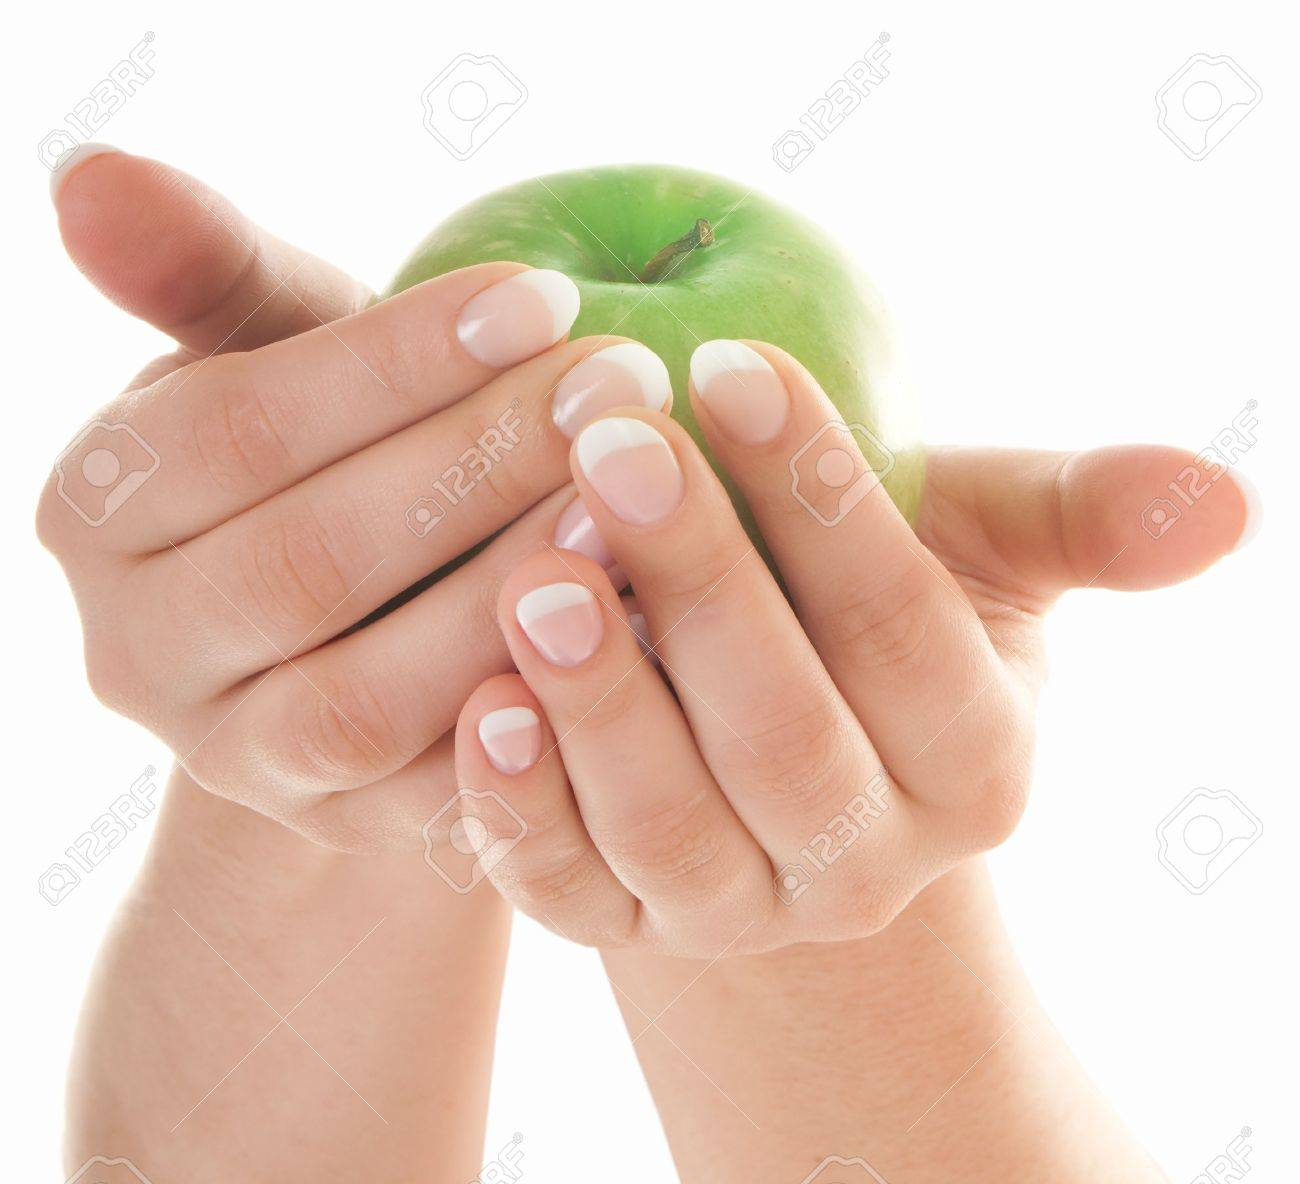 Green fresh apple in beutiful female hands with nice french manicure isolated on white background - 6900705